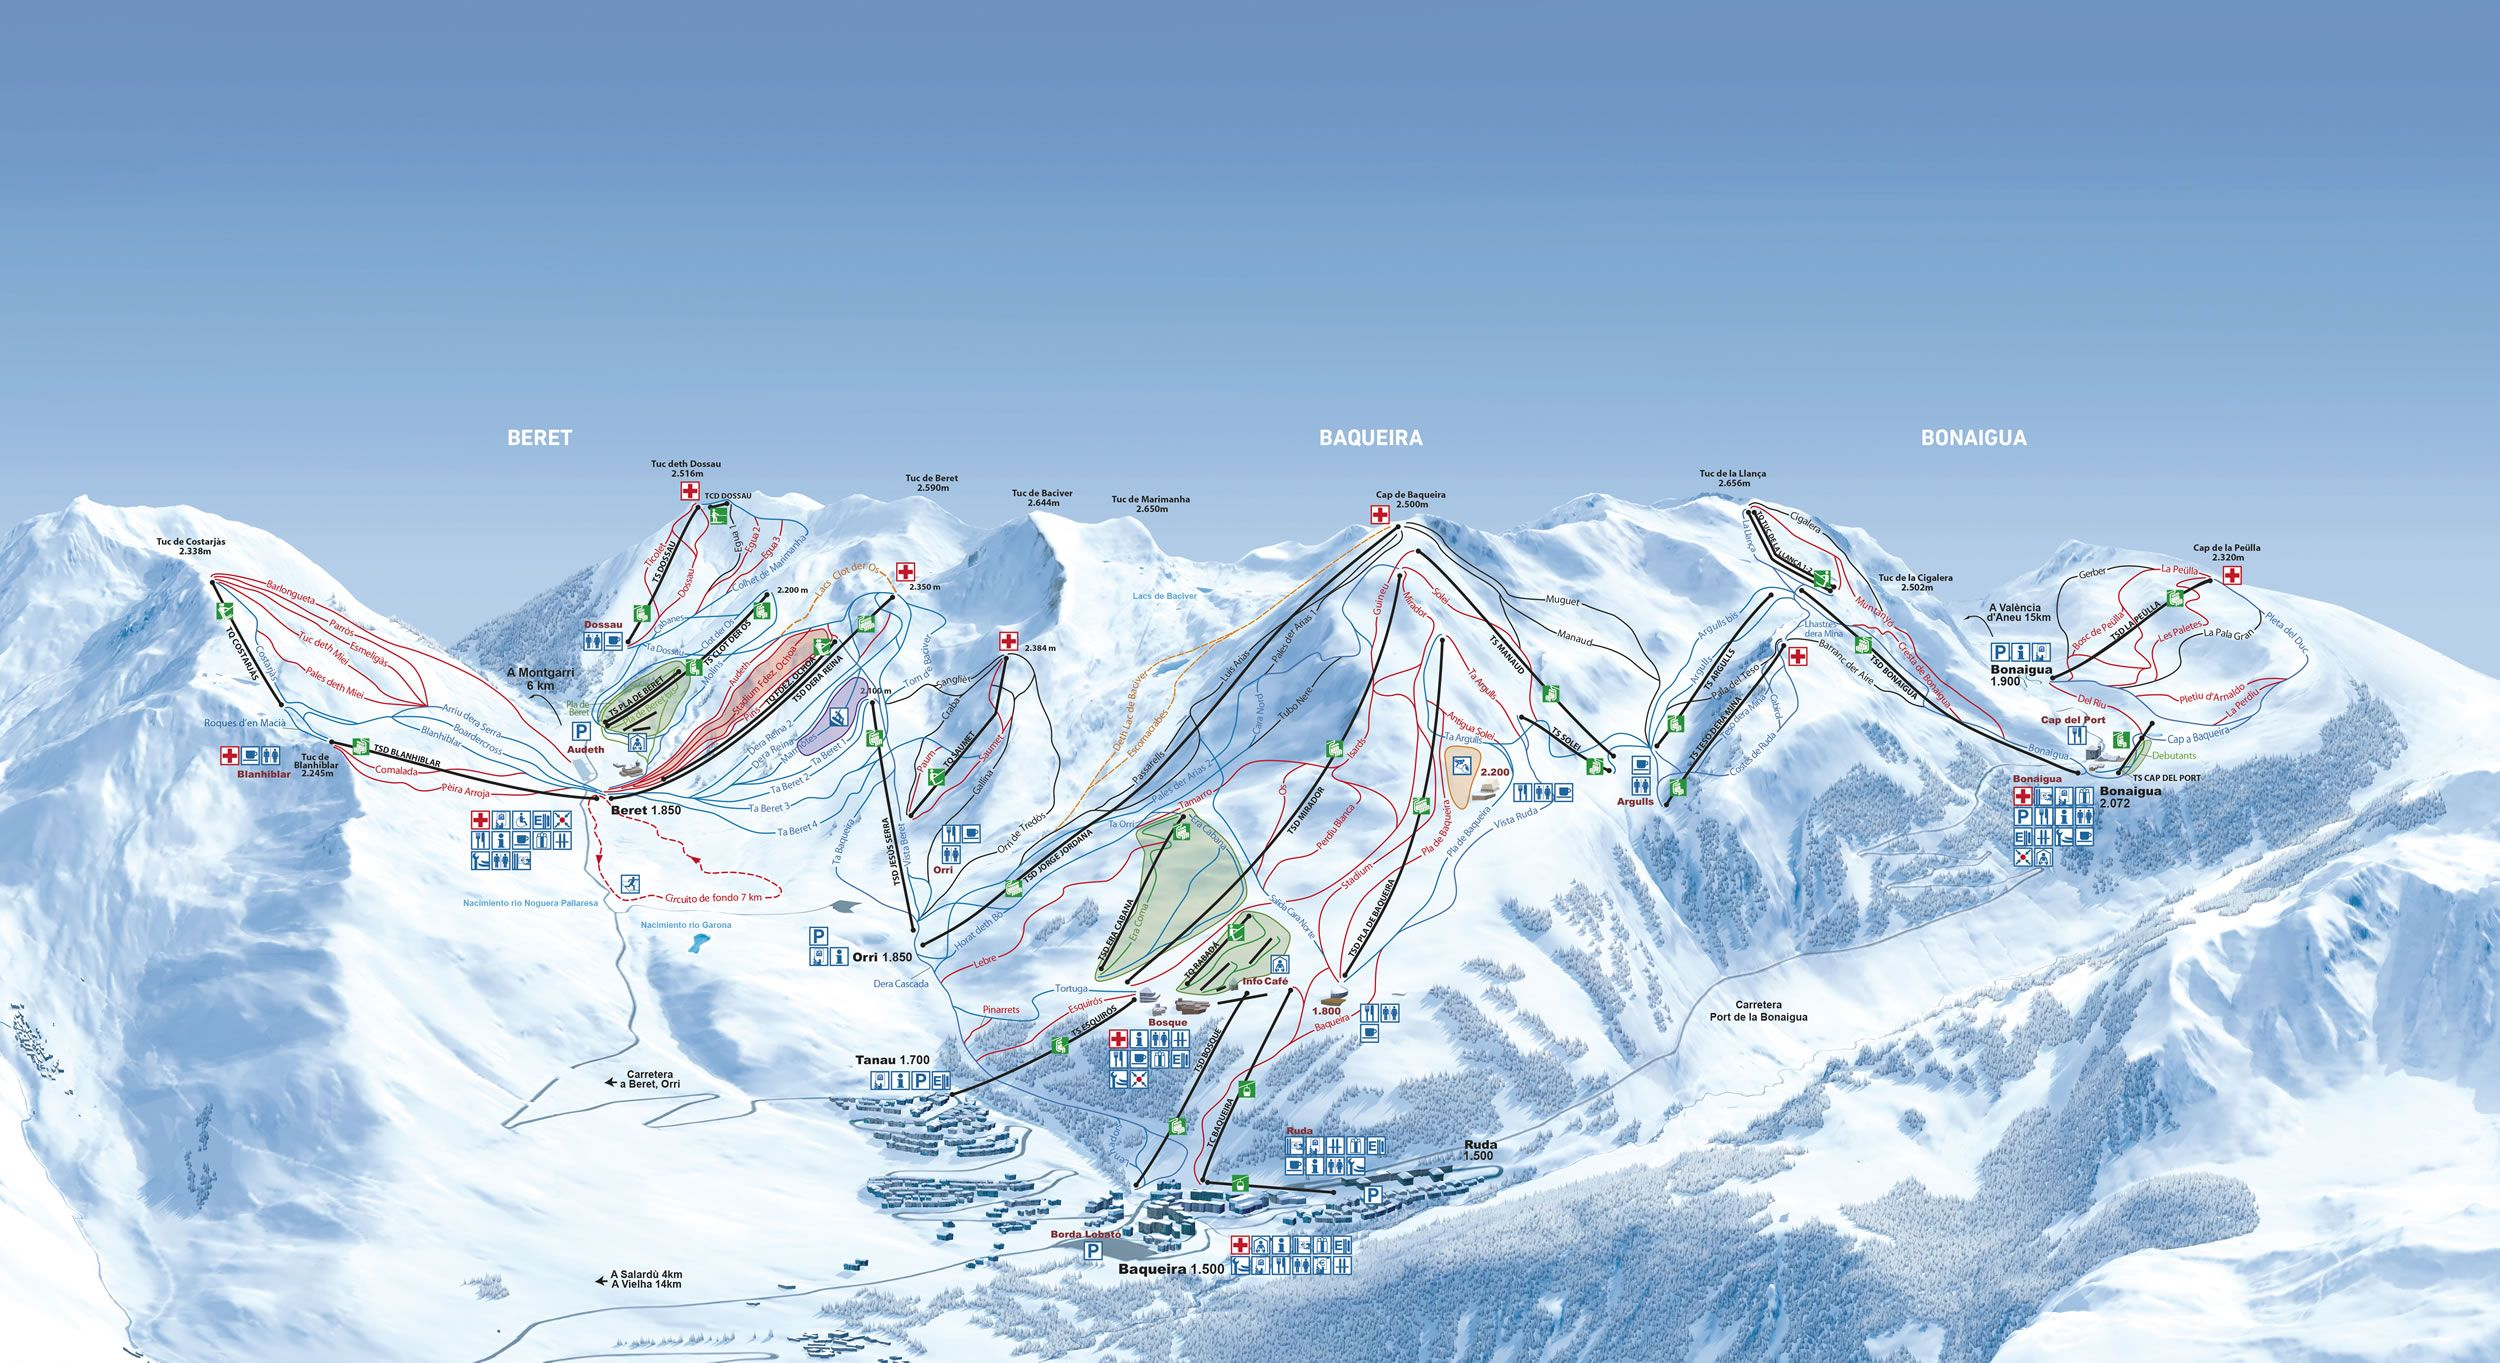 Baqueira Beret Trail Maps Ski Trails Ski Resort